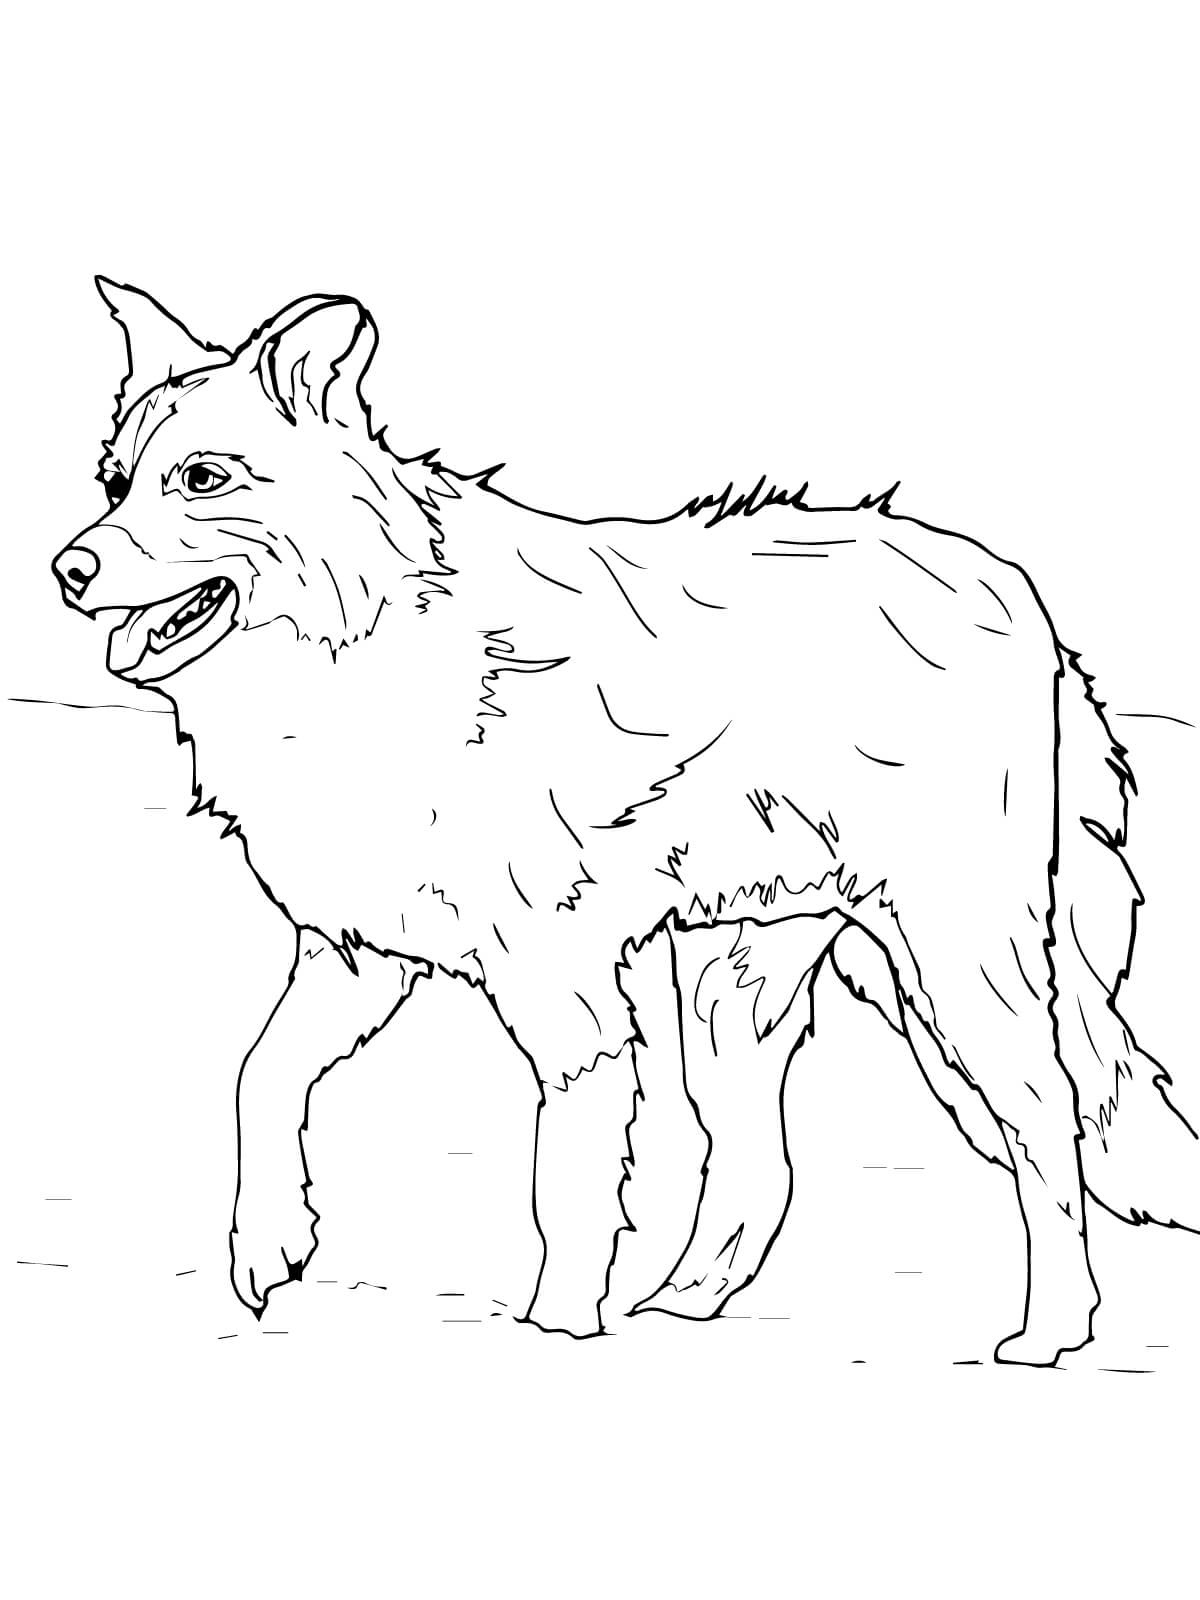 Scotch Sheep Dog Coloring Page